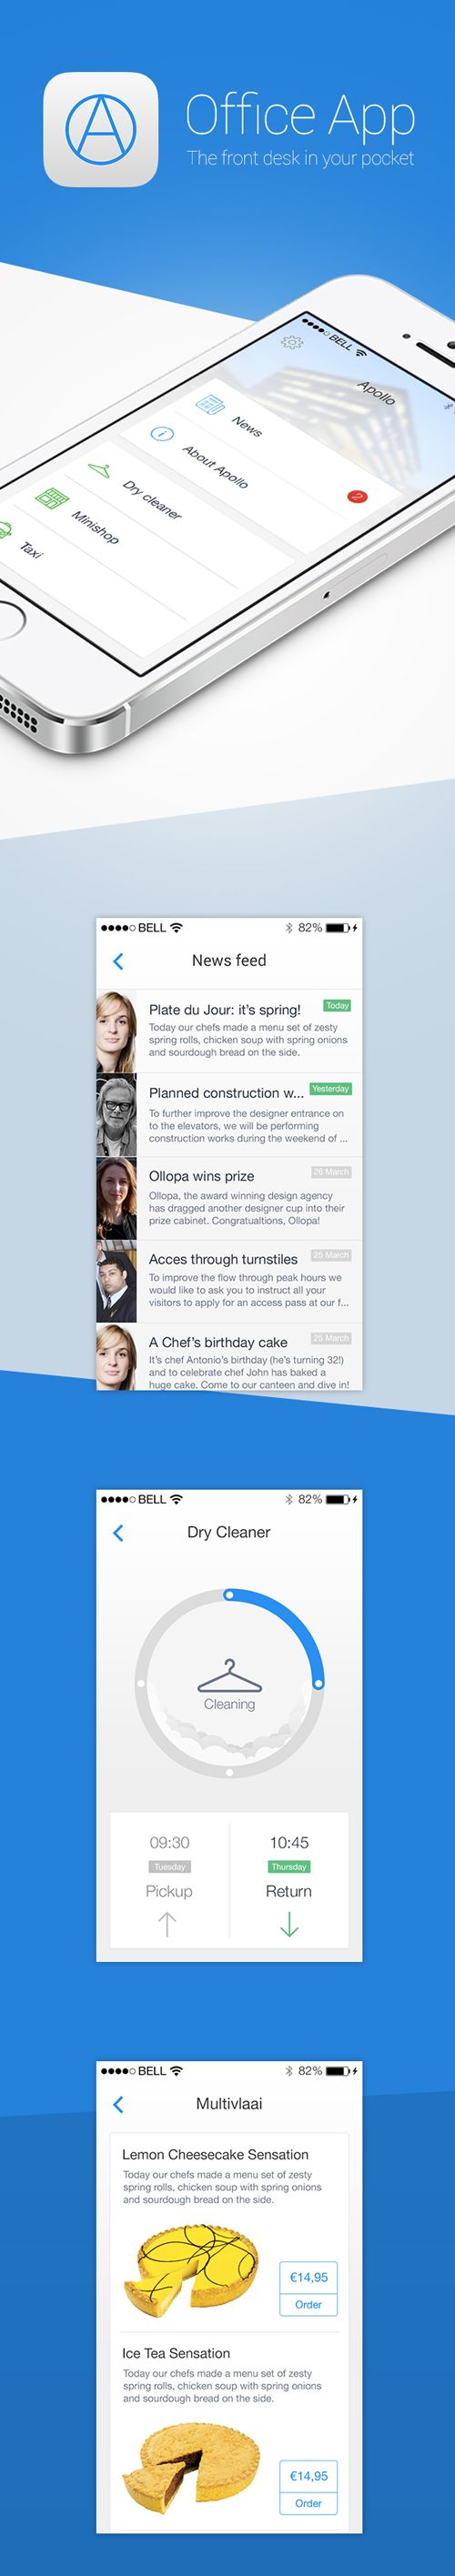 17 Best Images About Mobile UI On Pinterest App Design Mobile